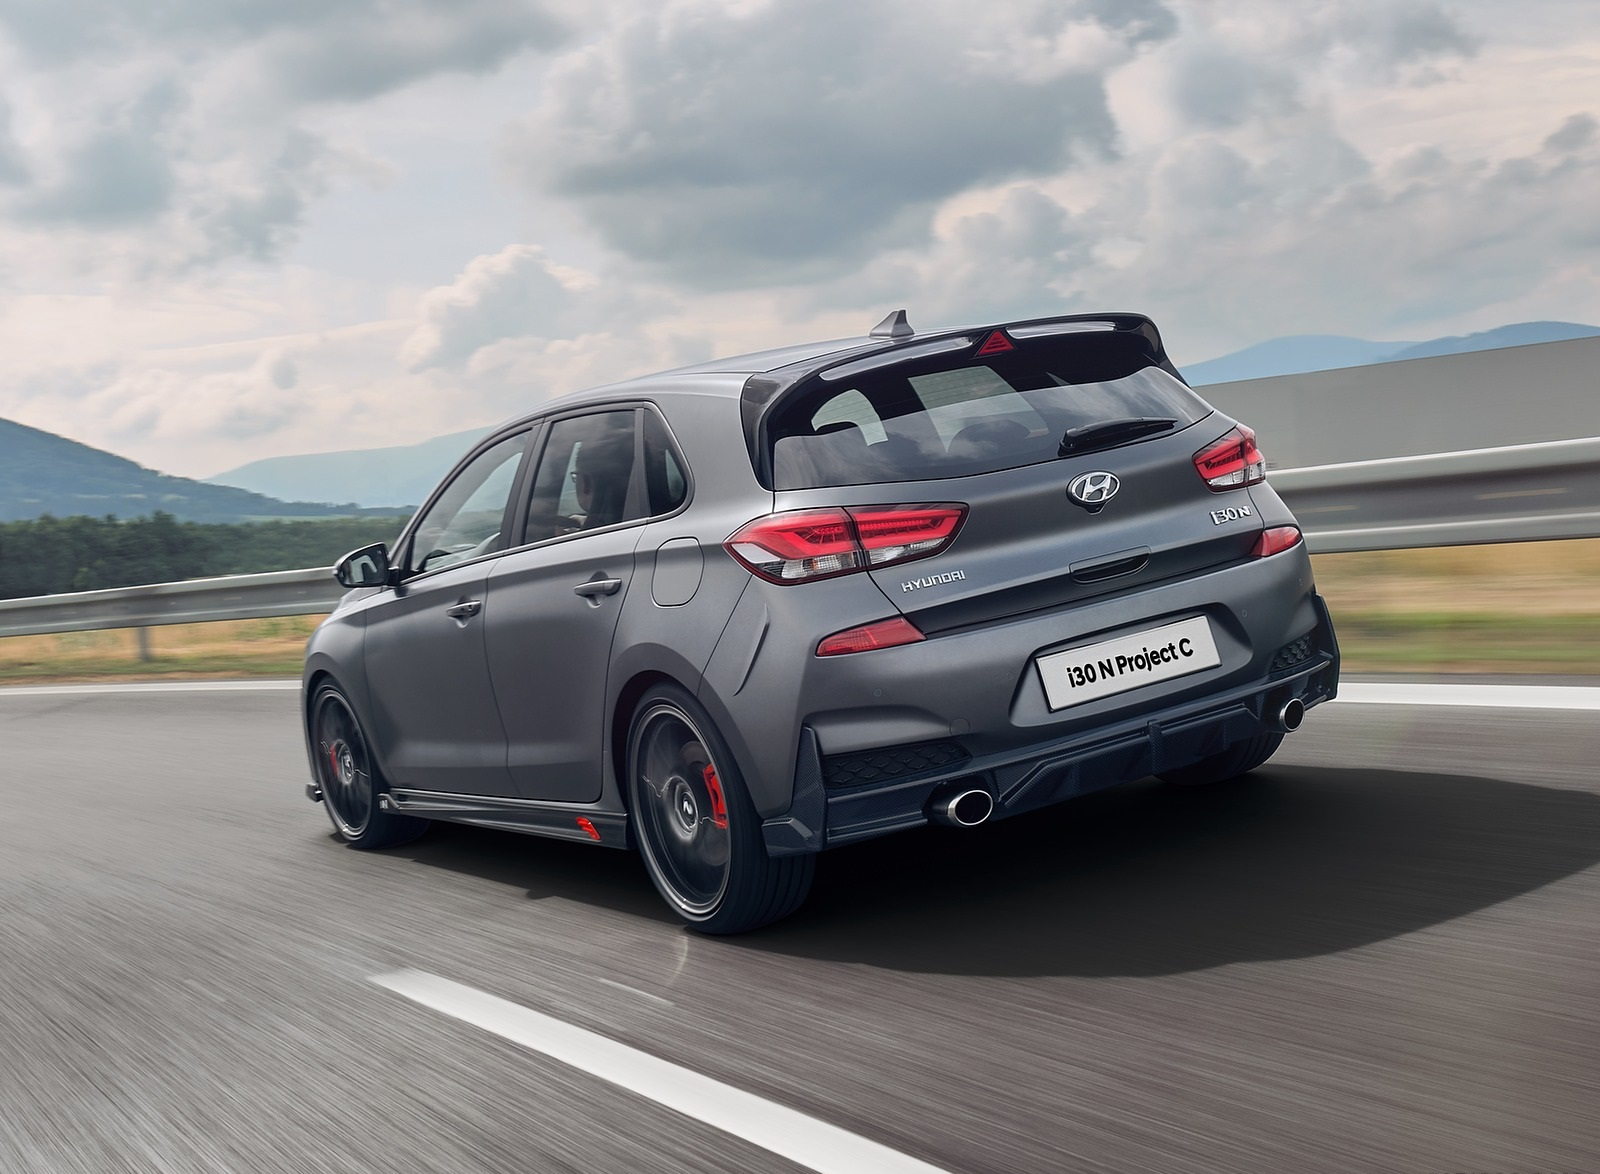 2020 Hyundai i30 N Project C Rear Three-Quarter Wallpapers (7)